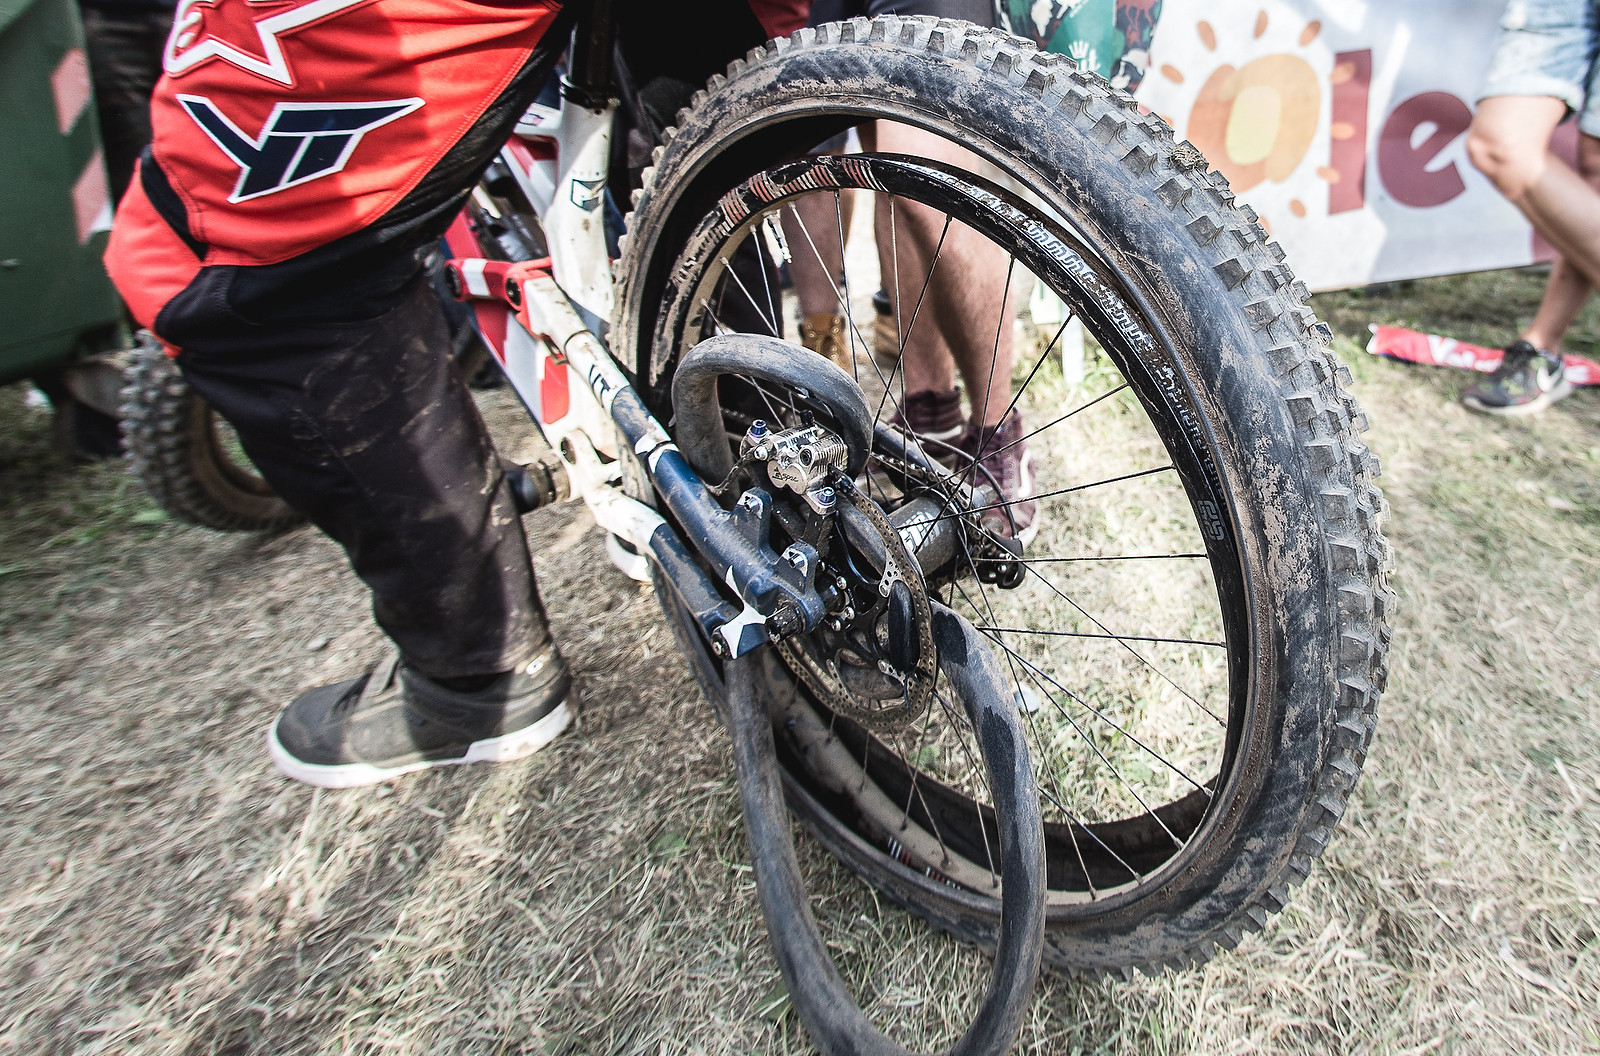 Gwin's exploded wheel from World Champs in 2016 with the Flat Tire Defender hanging out. This was in the Vital slideshow and no one commented.